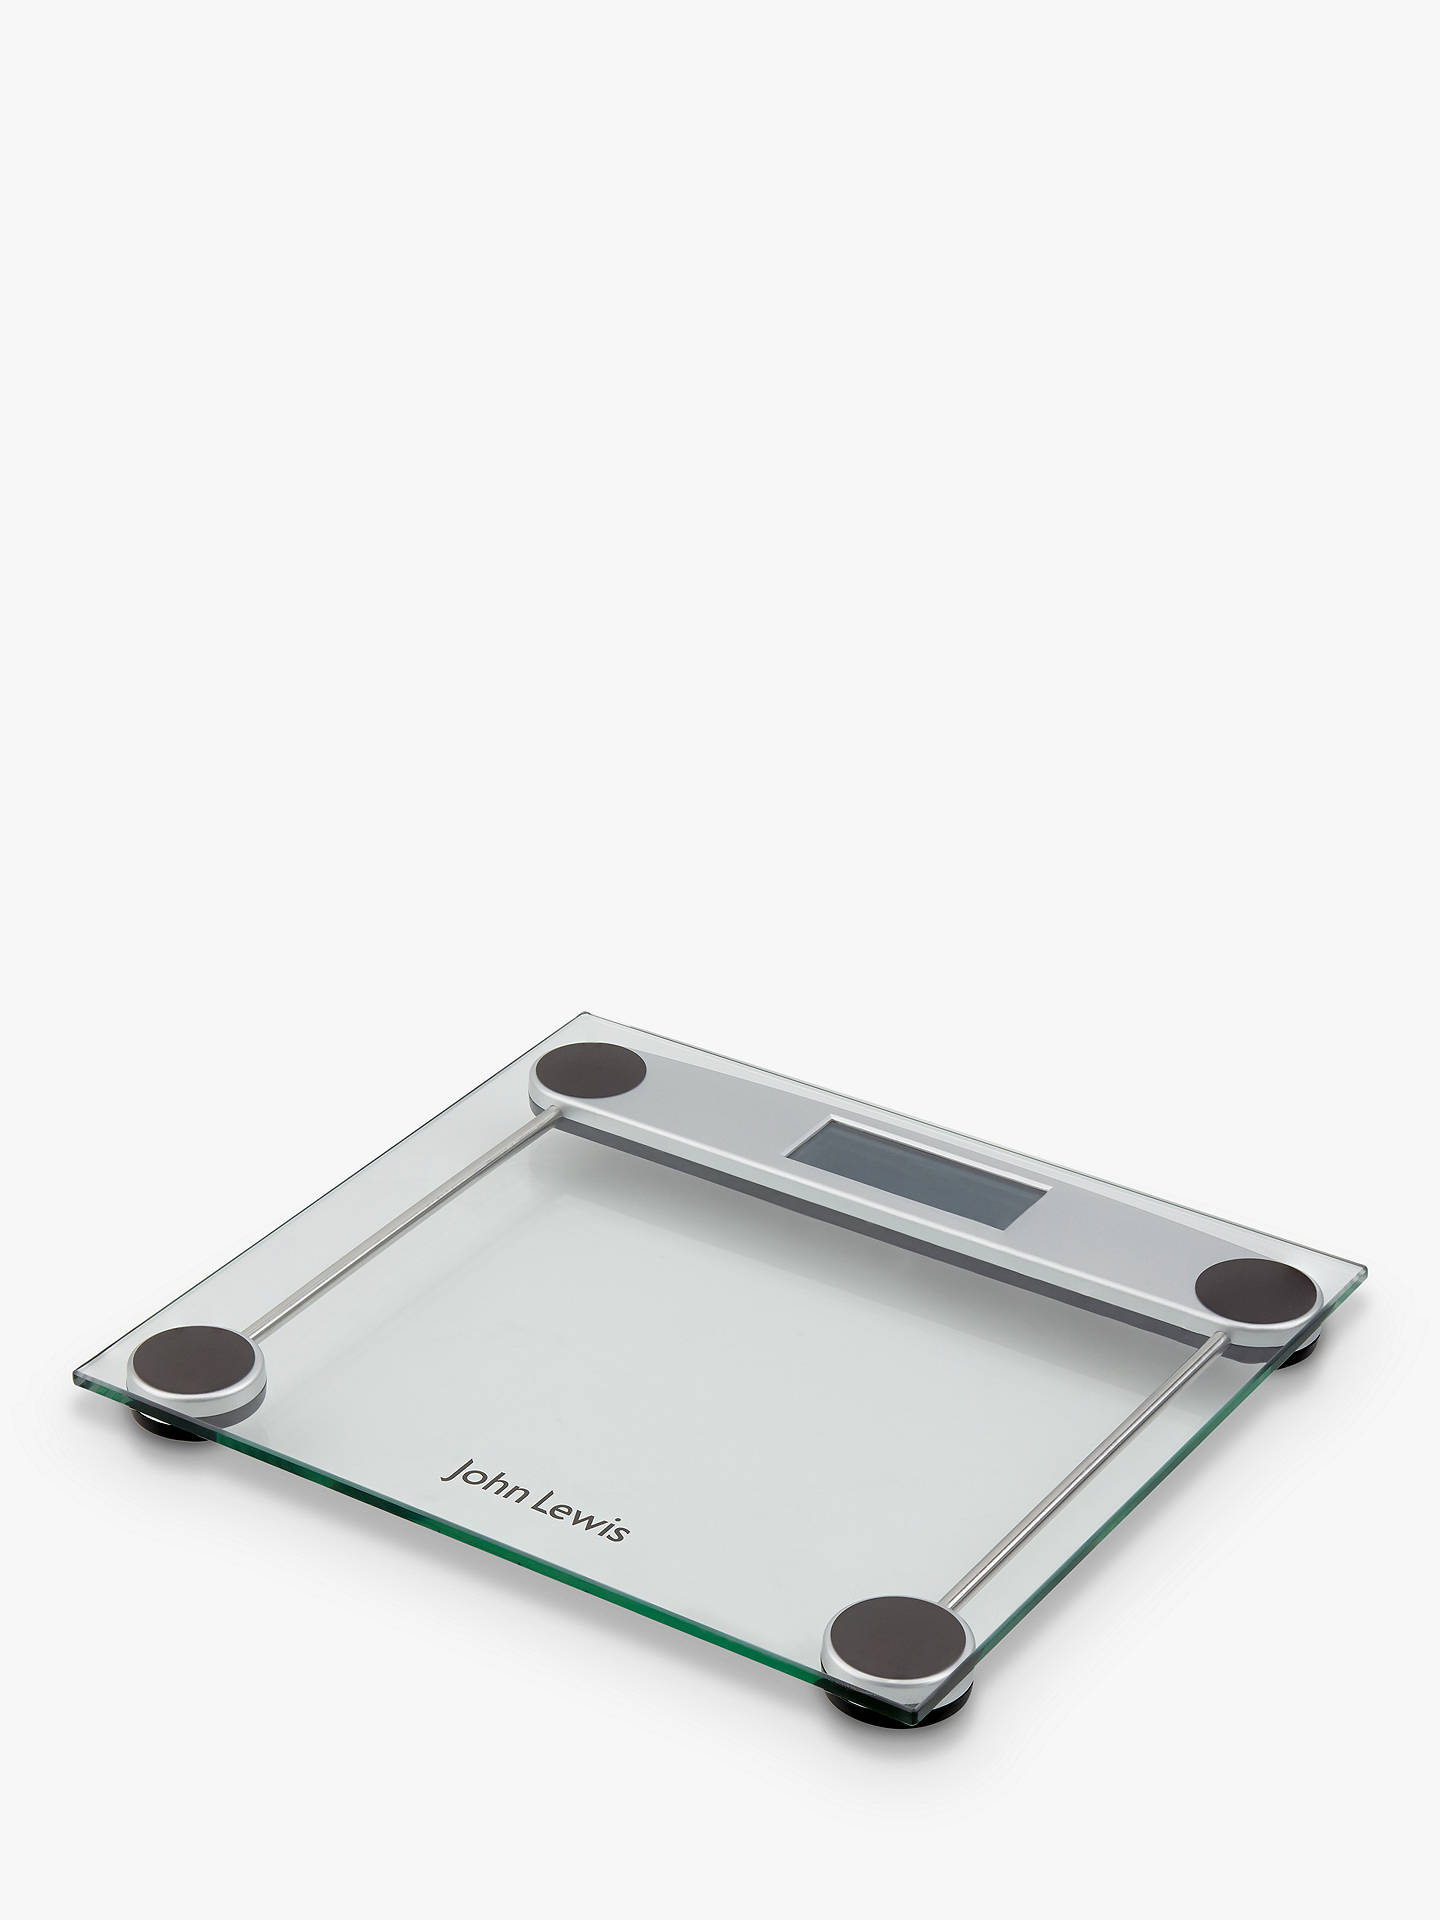 BuyJohn Lewis & Partners Digital Glass Bathroom Scale Online at johnlewis.com